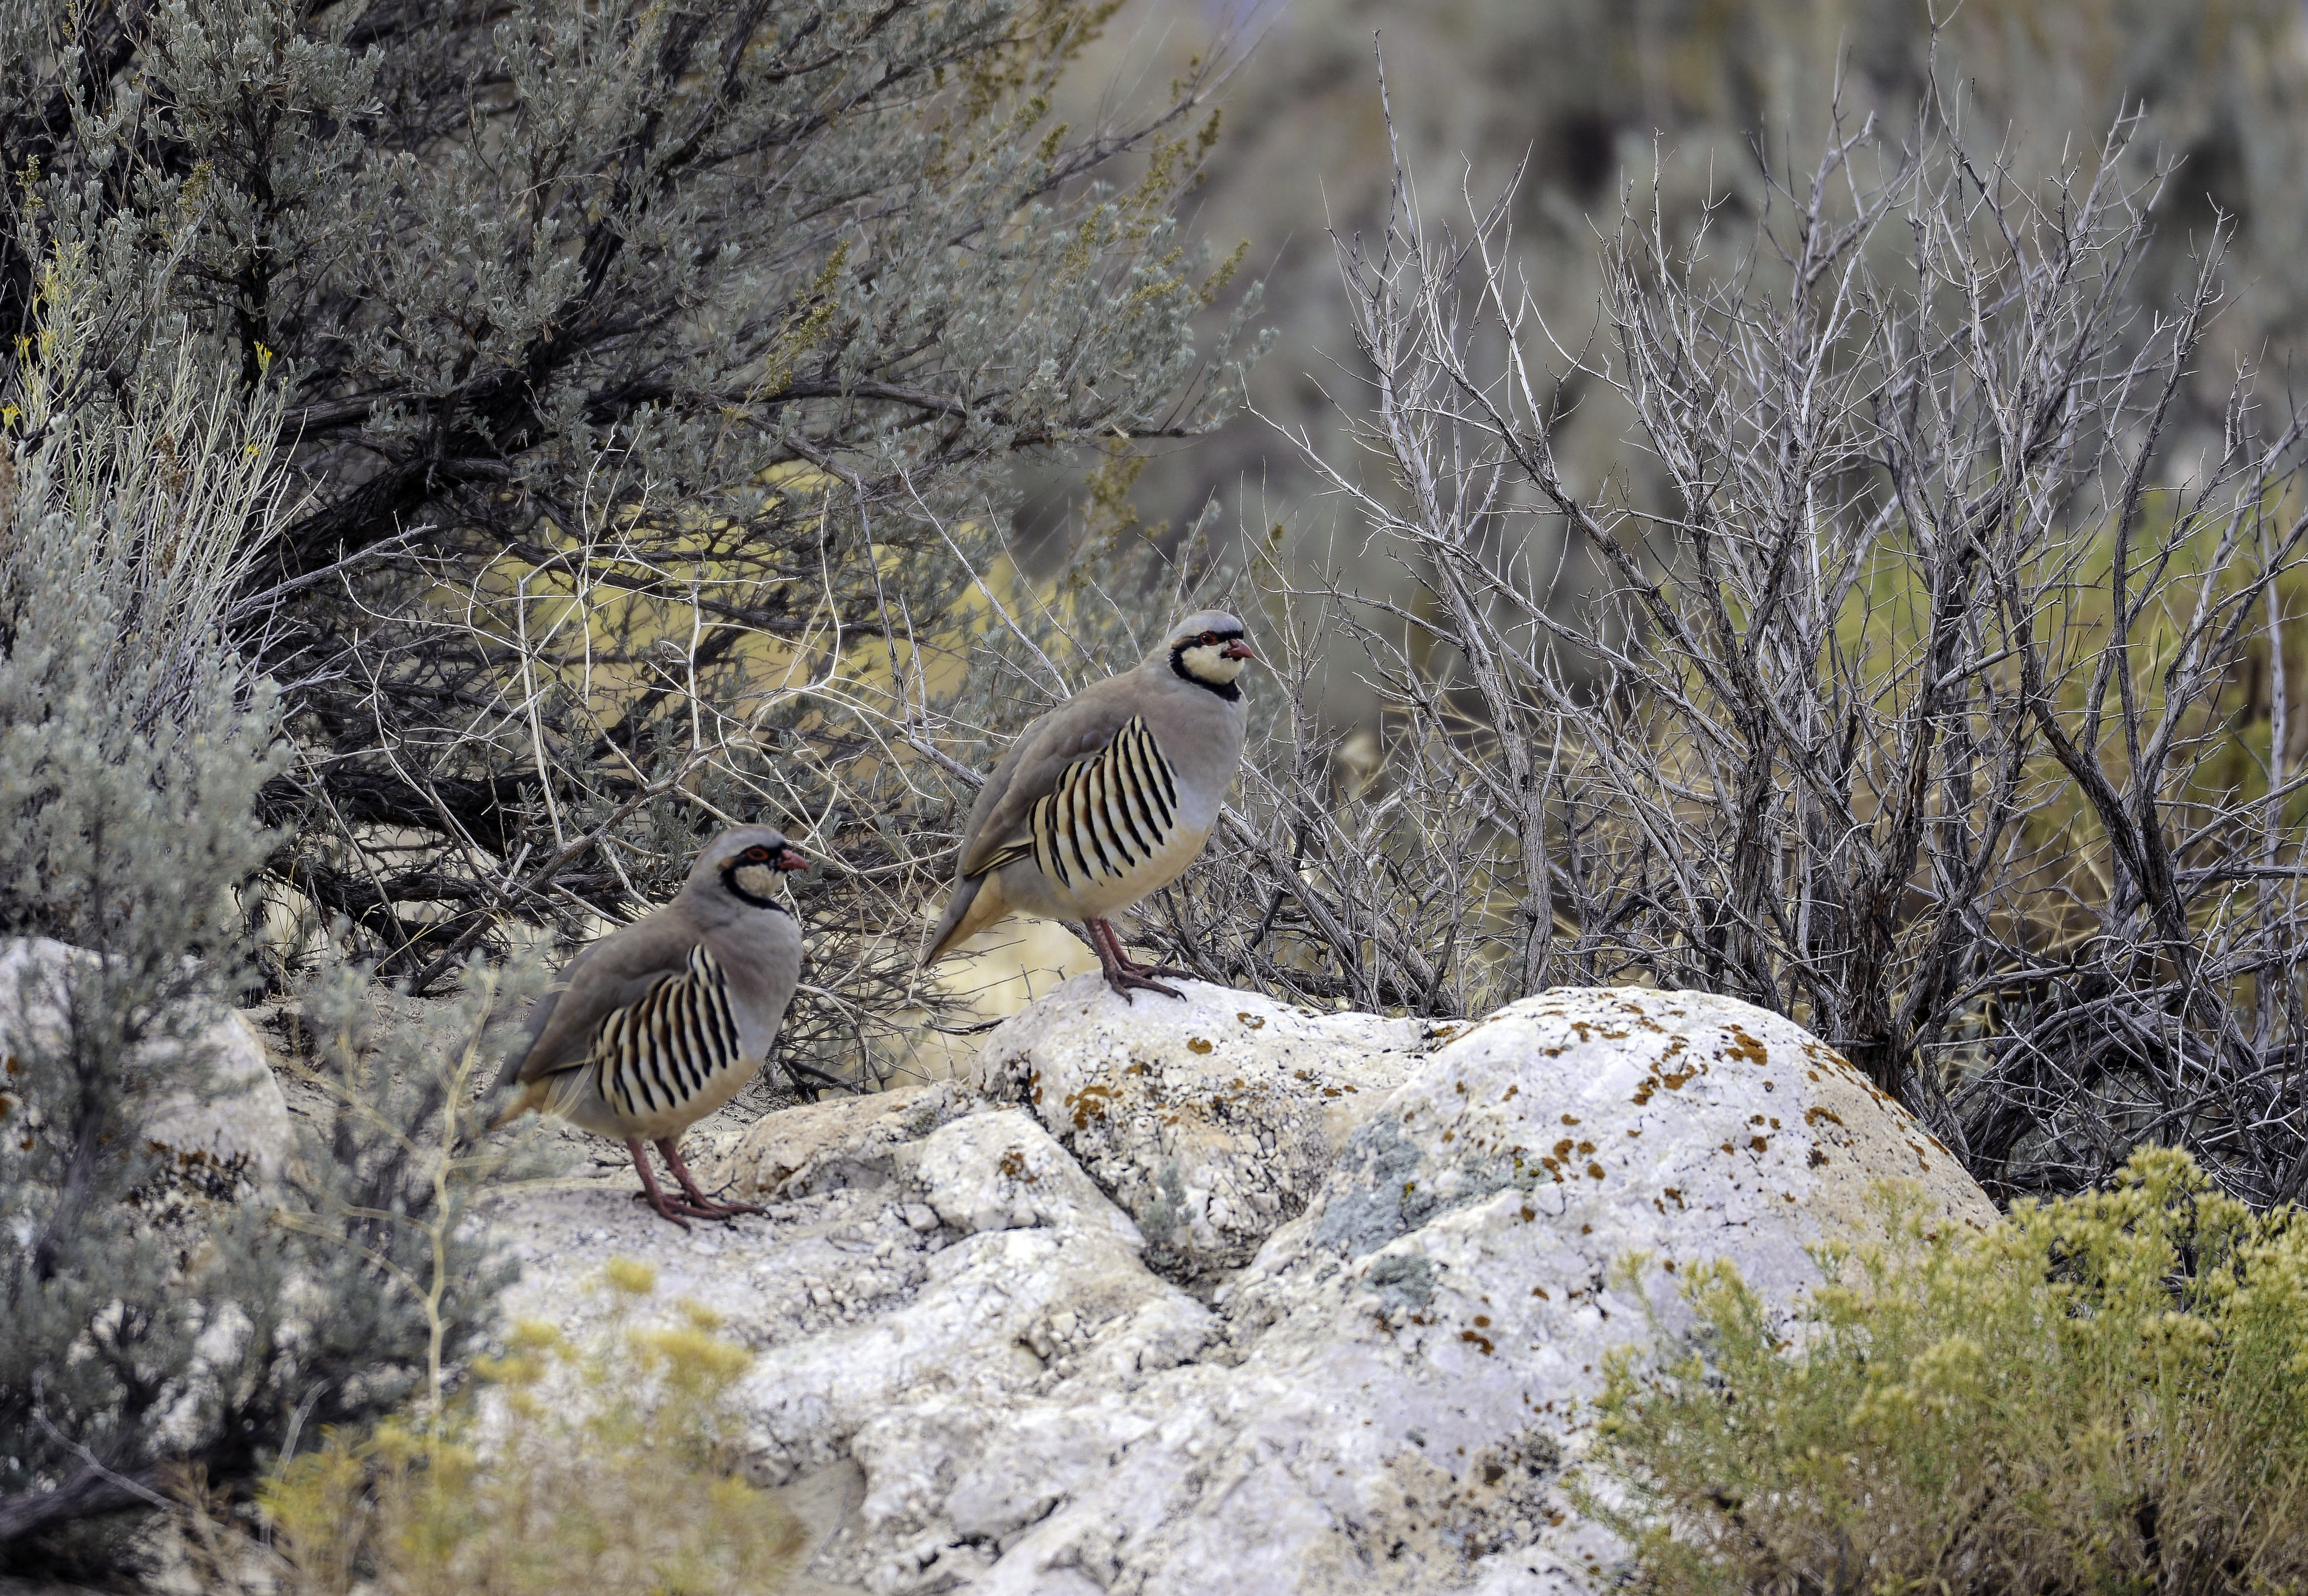 The number of chukar partridge has skyrocketed in many places in Utah this year. The general hunt starts Sept. 26.